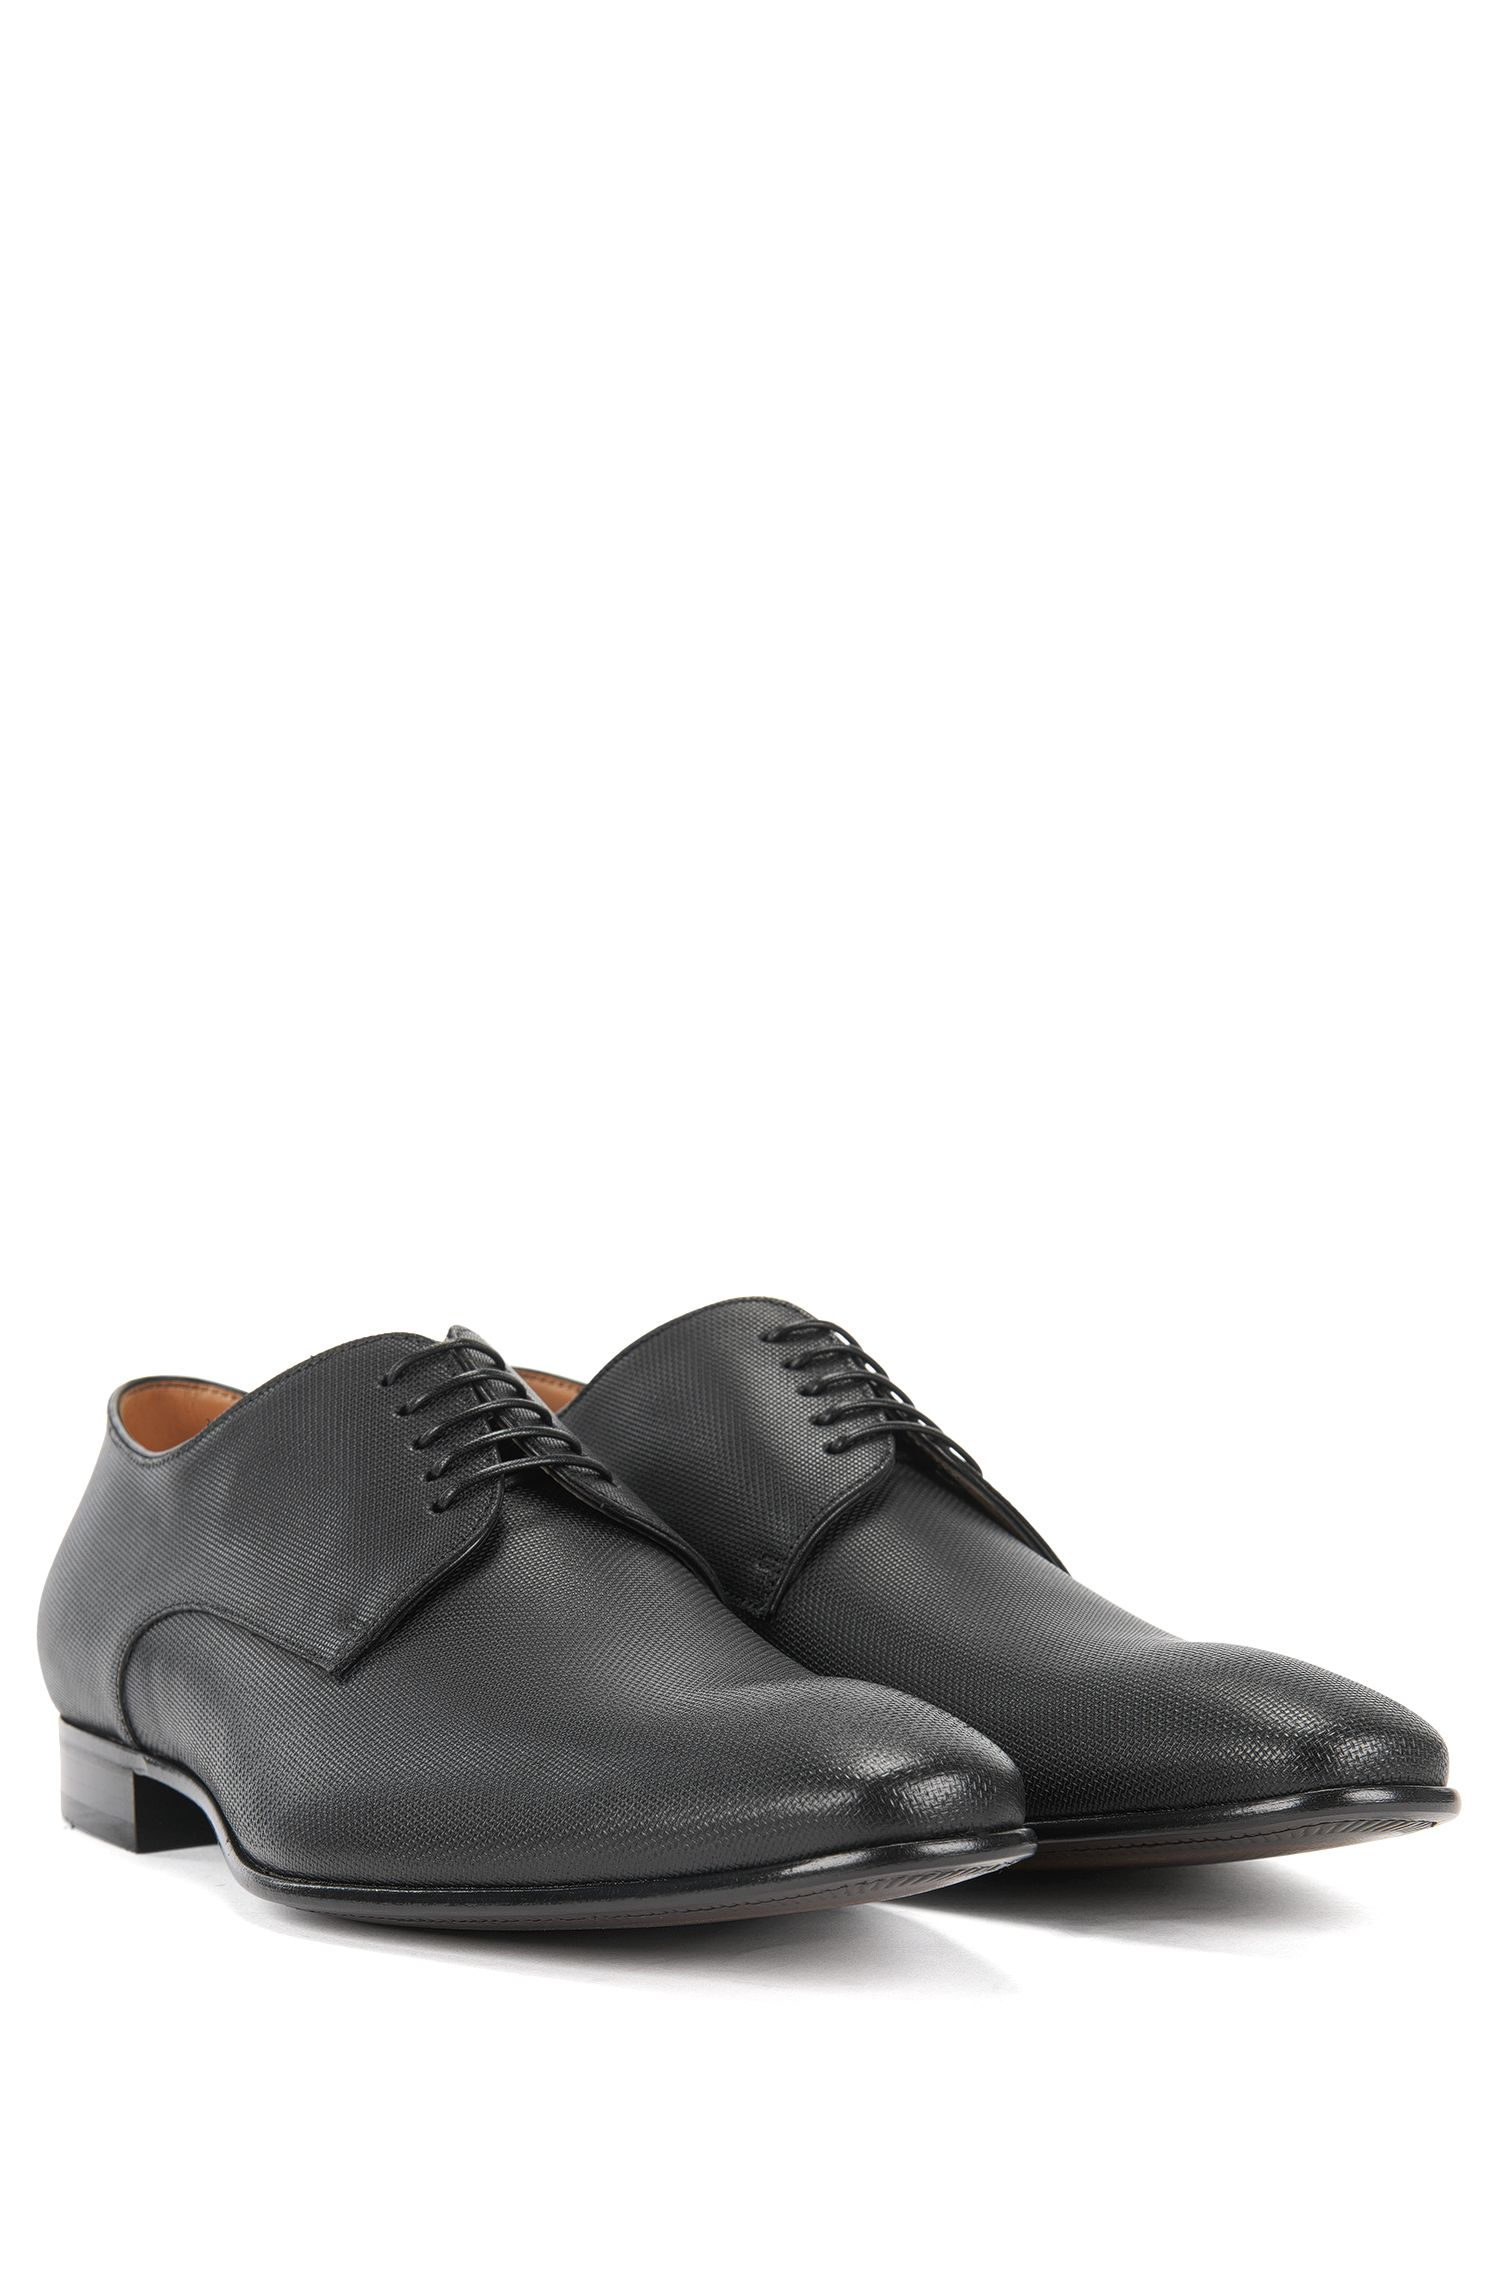 'Prindo' | Italian Leather Dress Shoes